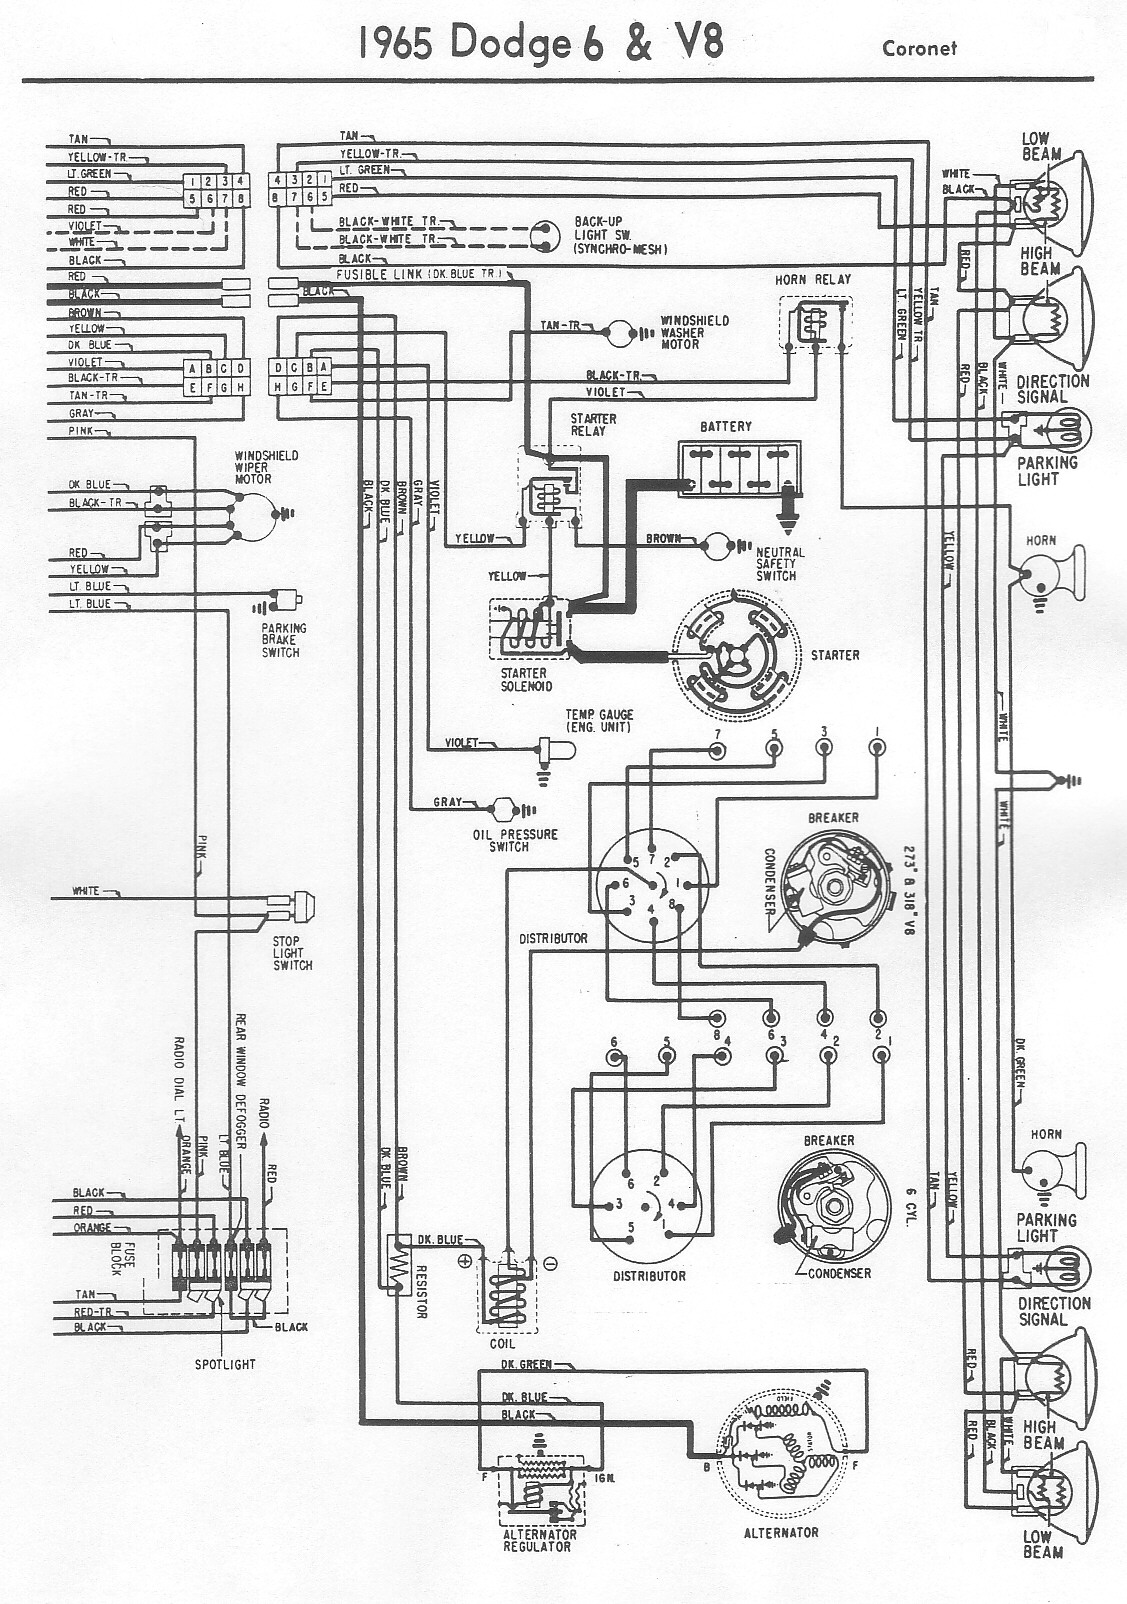 1958 Imperial Wiring Diagram House Wiring Diagram Symbols \u2022 Chrysler  300 Fuse Box Layout 1961 Chrysler 300 Wiring Diagram